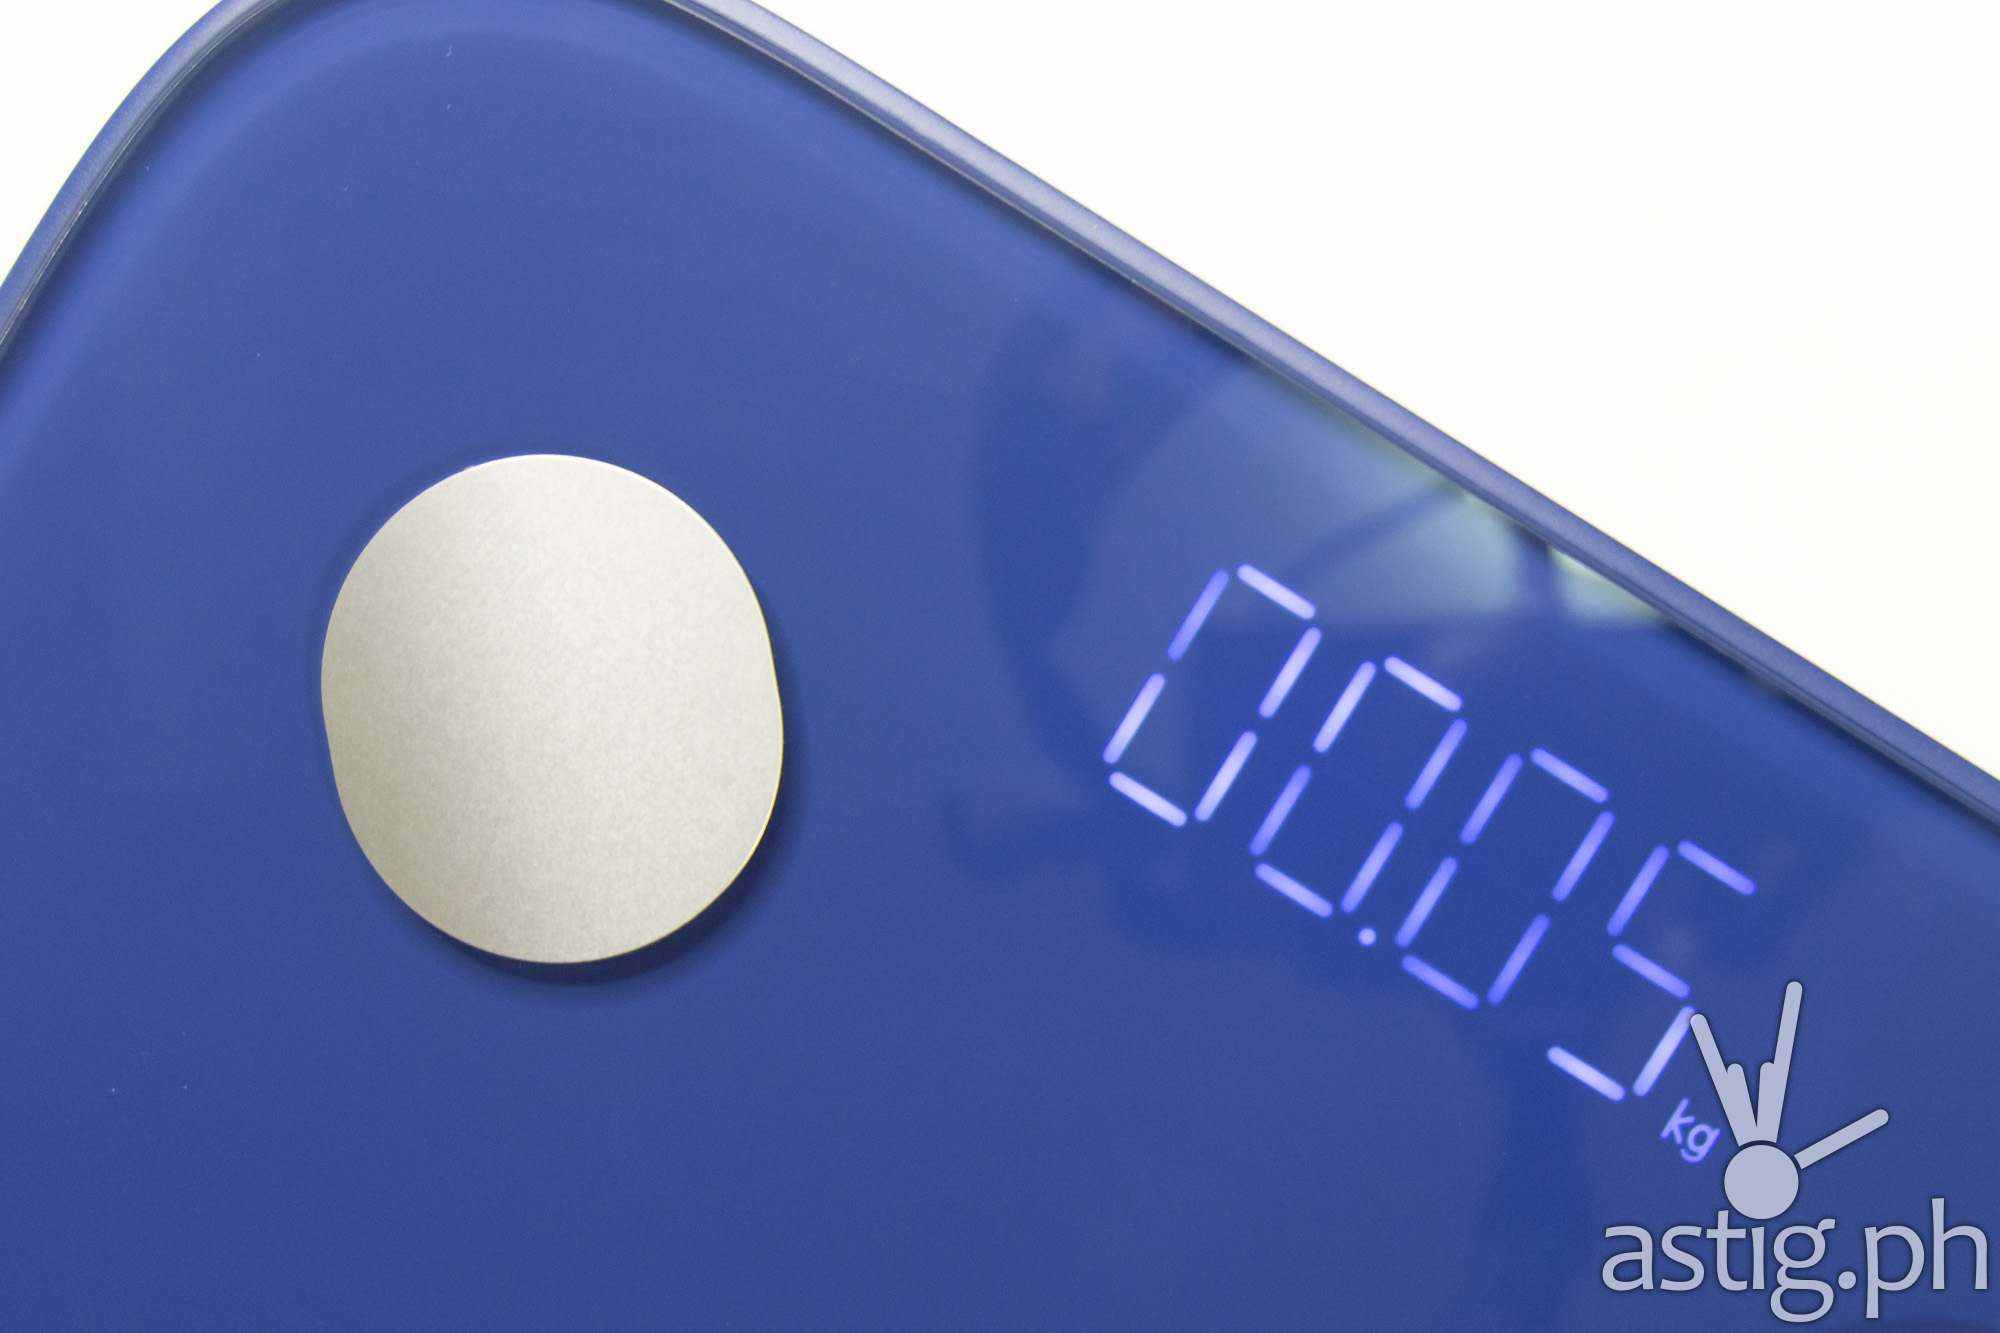 LCD display - realme Smart Scale (Philippines)